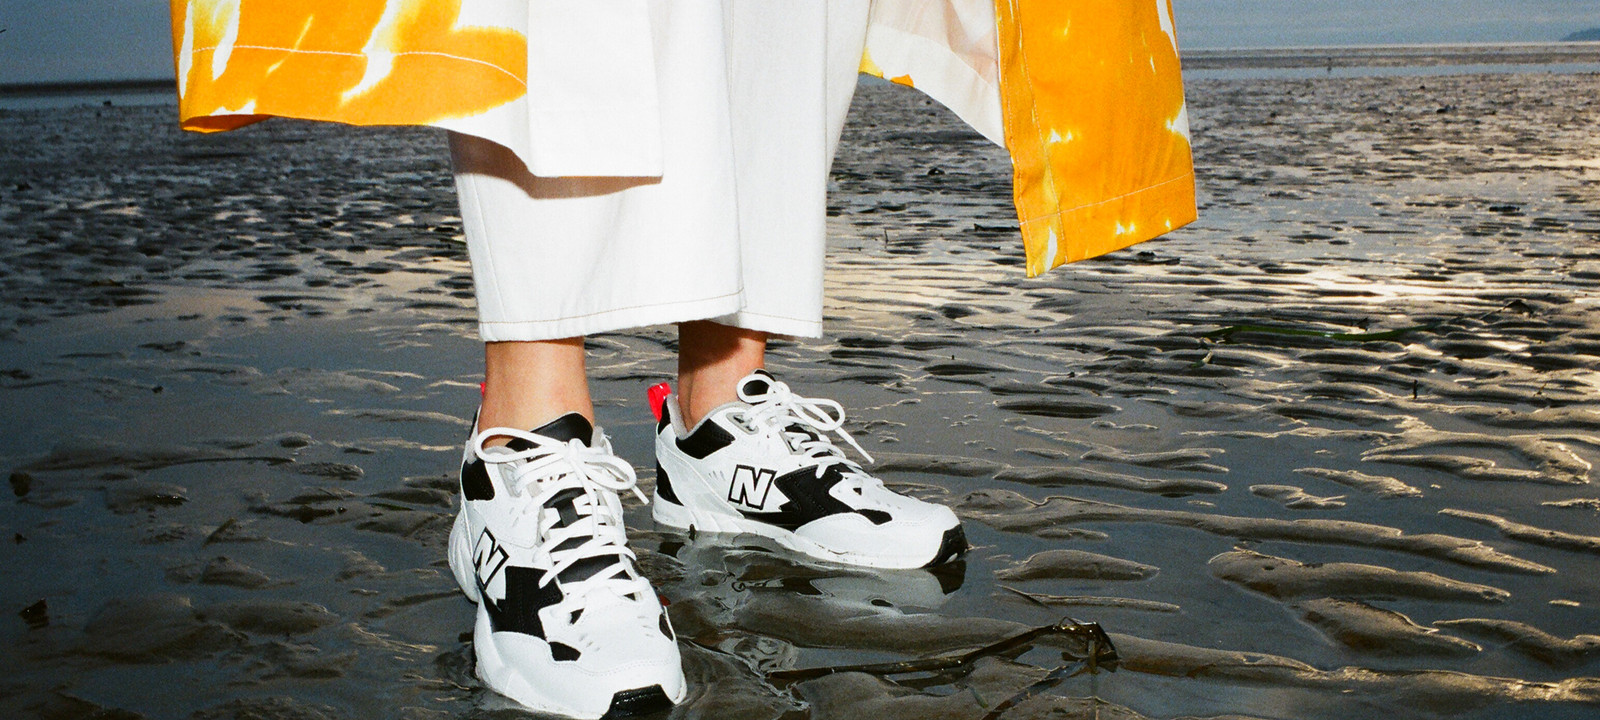 New Balance Sneakers Sneaker Spring Summer 2019 608v1 Black White Dries Van Noten Orange Coat White Pants Editorial Beach Sand Golden Hour